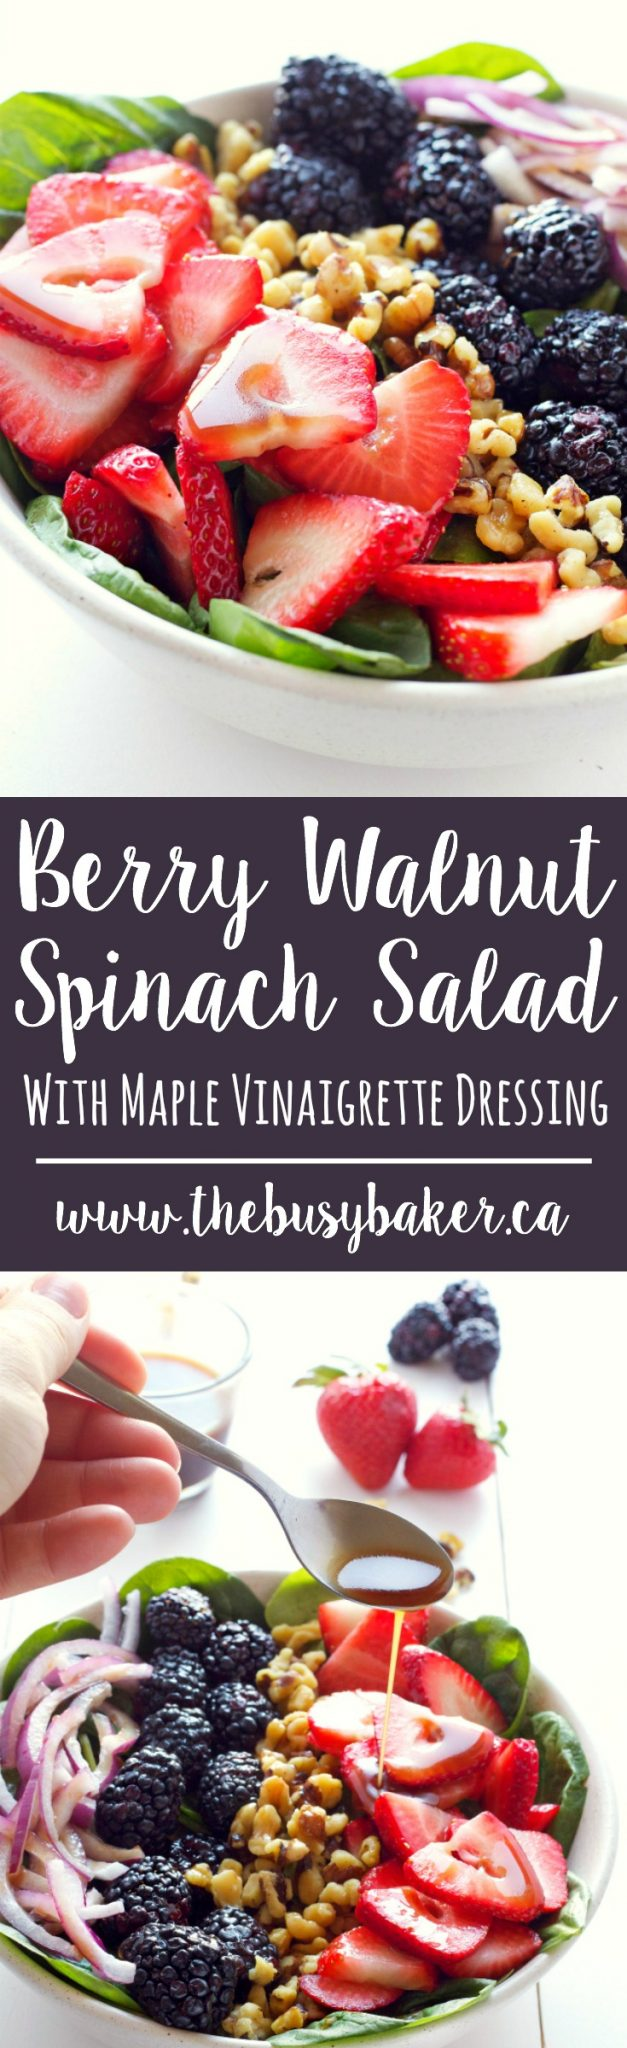 This healthy summer Berry Walnut Spinach Salad with Maple Vinaigrette is made with fresh spinach, berries and walnuts and an easy-to-make maple dressing! Recipe from thebusybaker.ca! via @busybakerblog